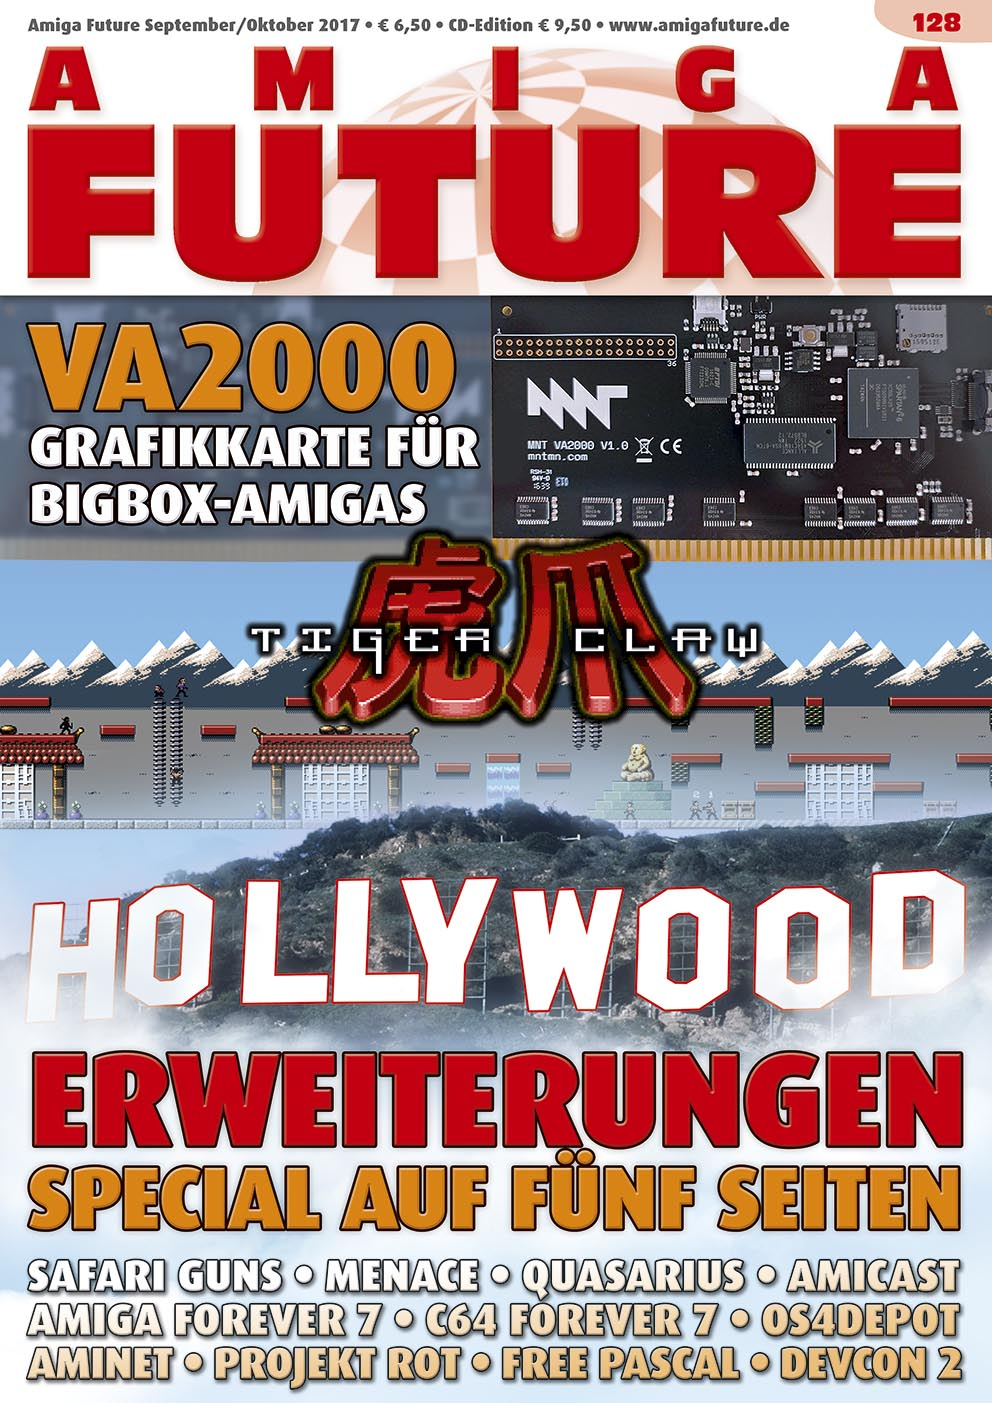 1 Year Subscription from Amiga Future Issue 128